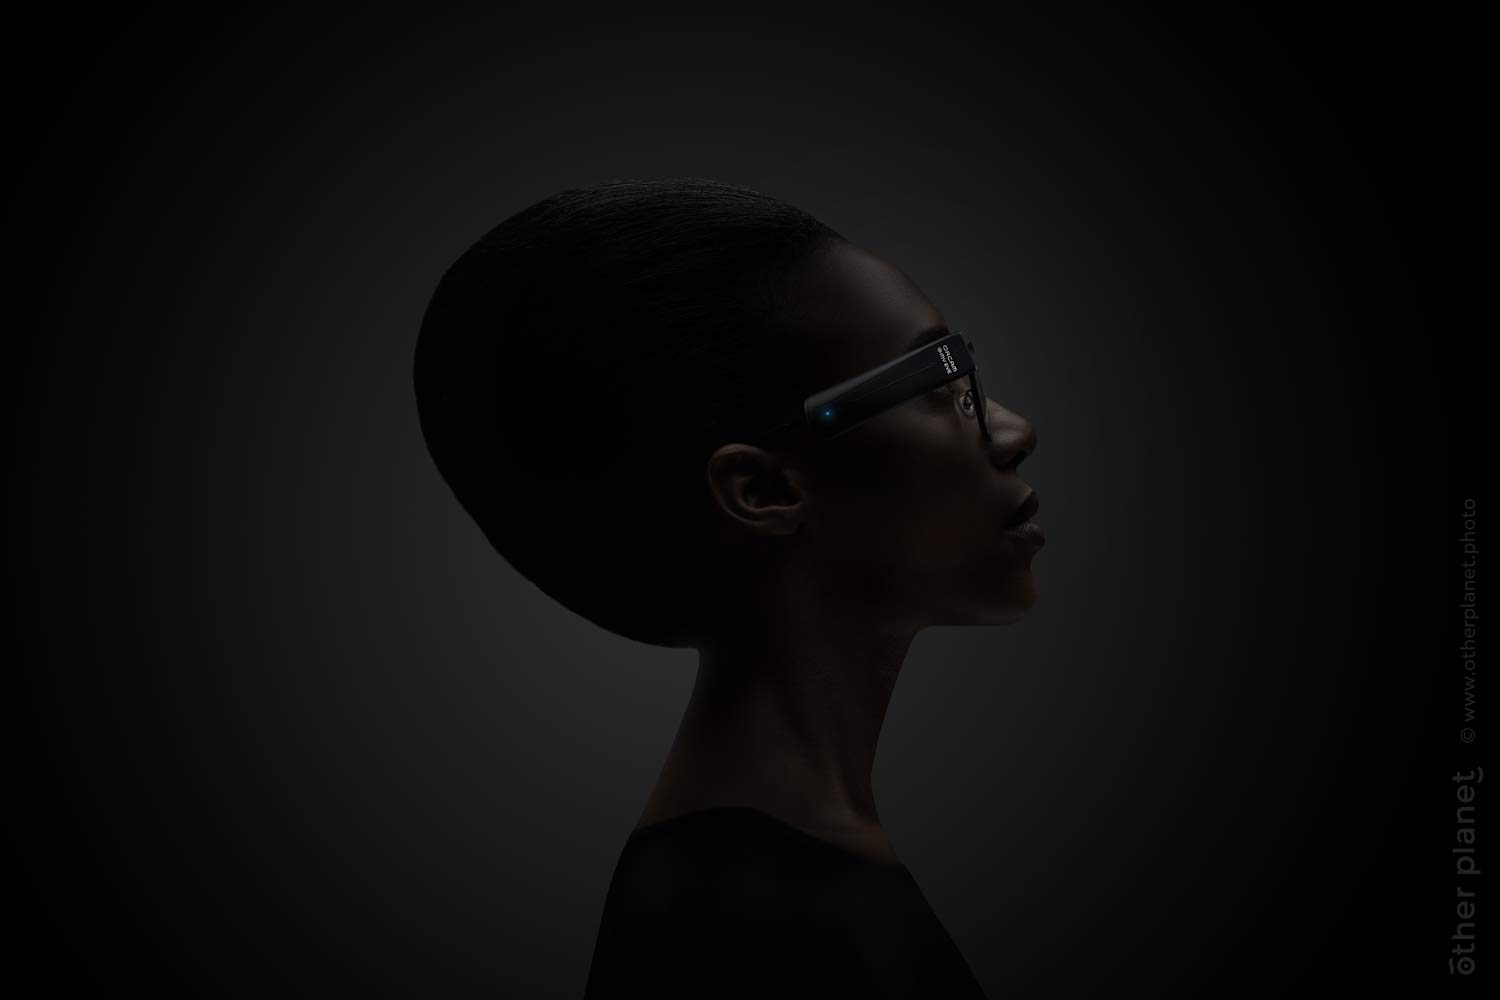 Woman wearing Orcam Mye Eye on black background